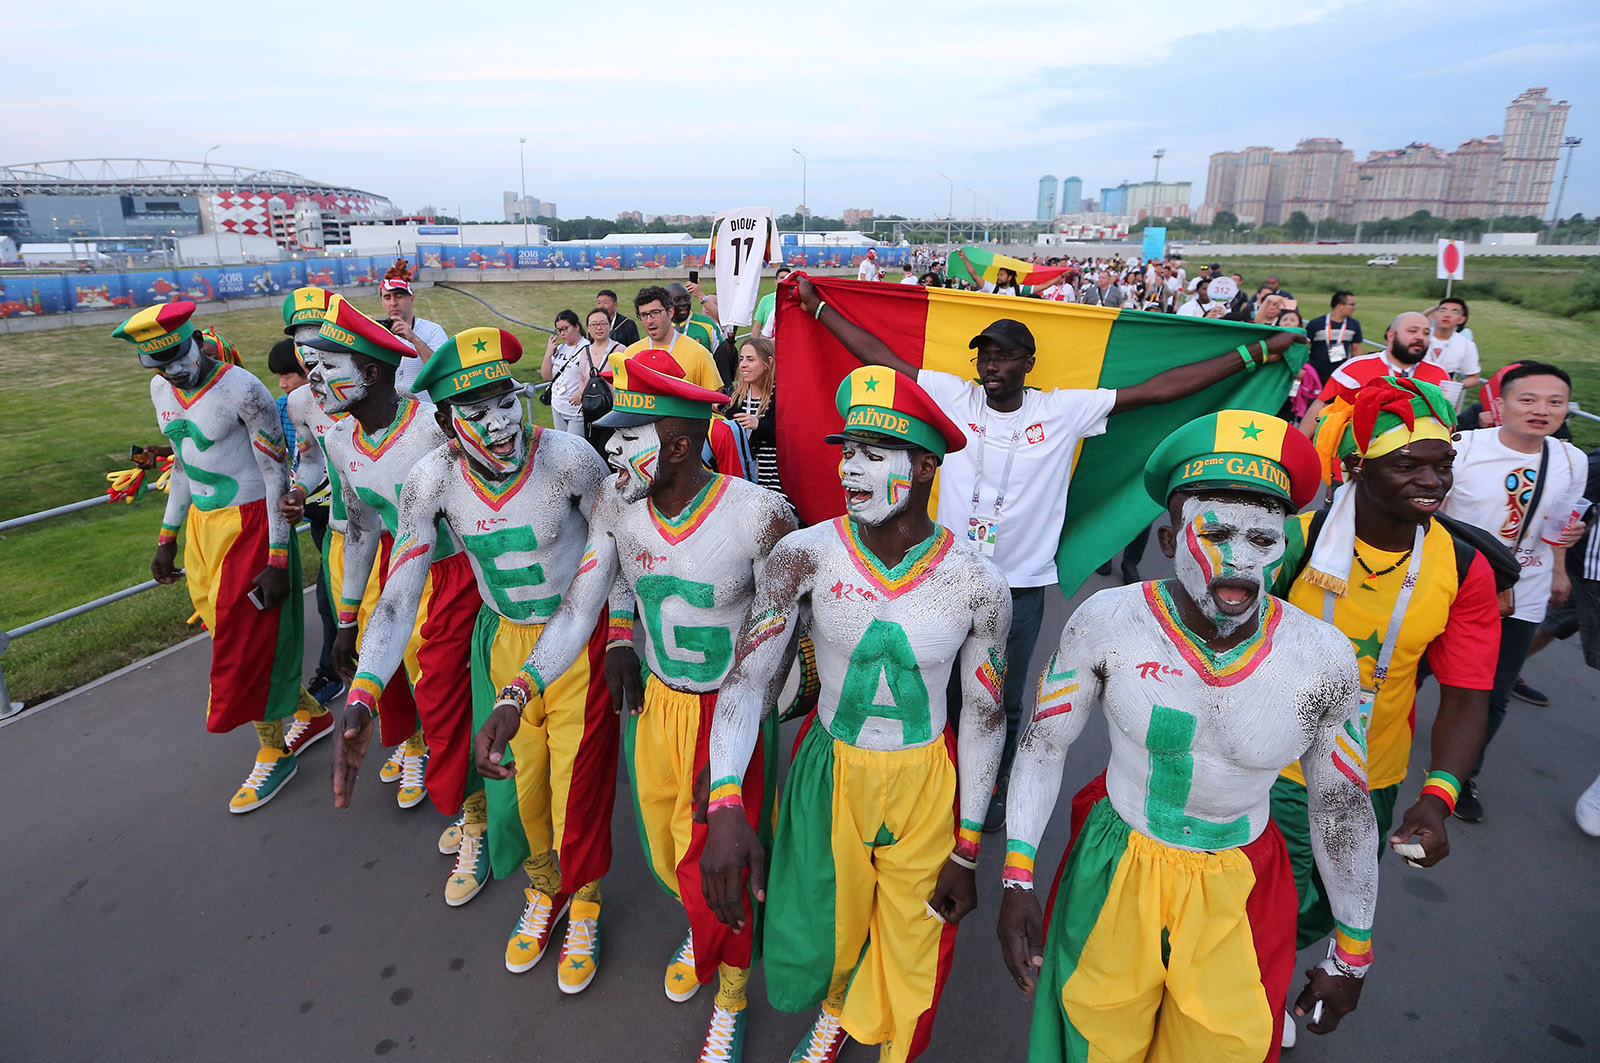 Senegalese fans parading before their team's match against Poland in Moscow, Russia, June 19, 2018